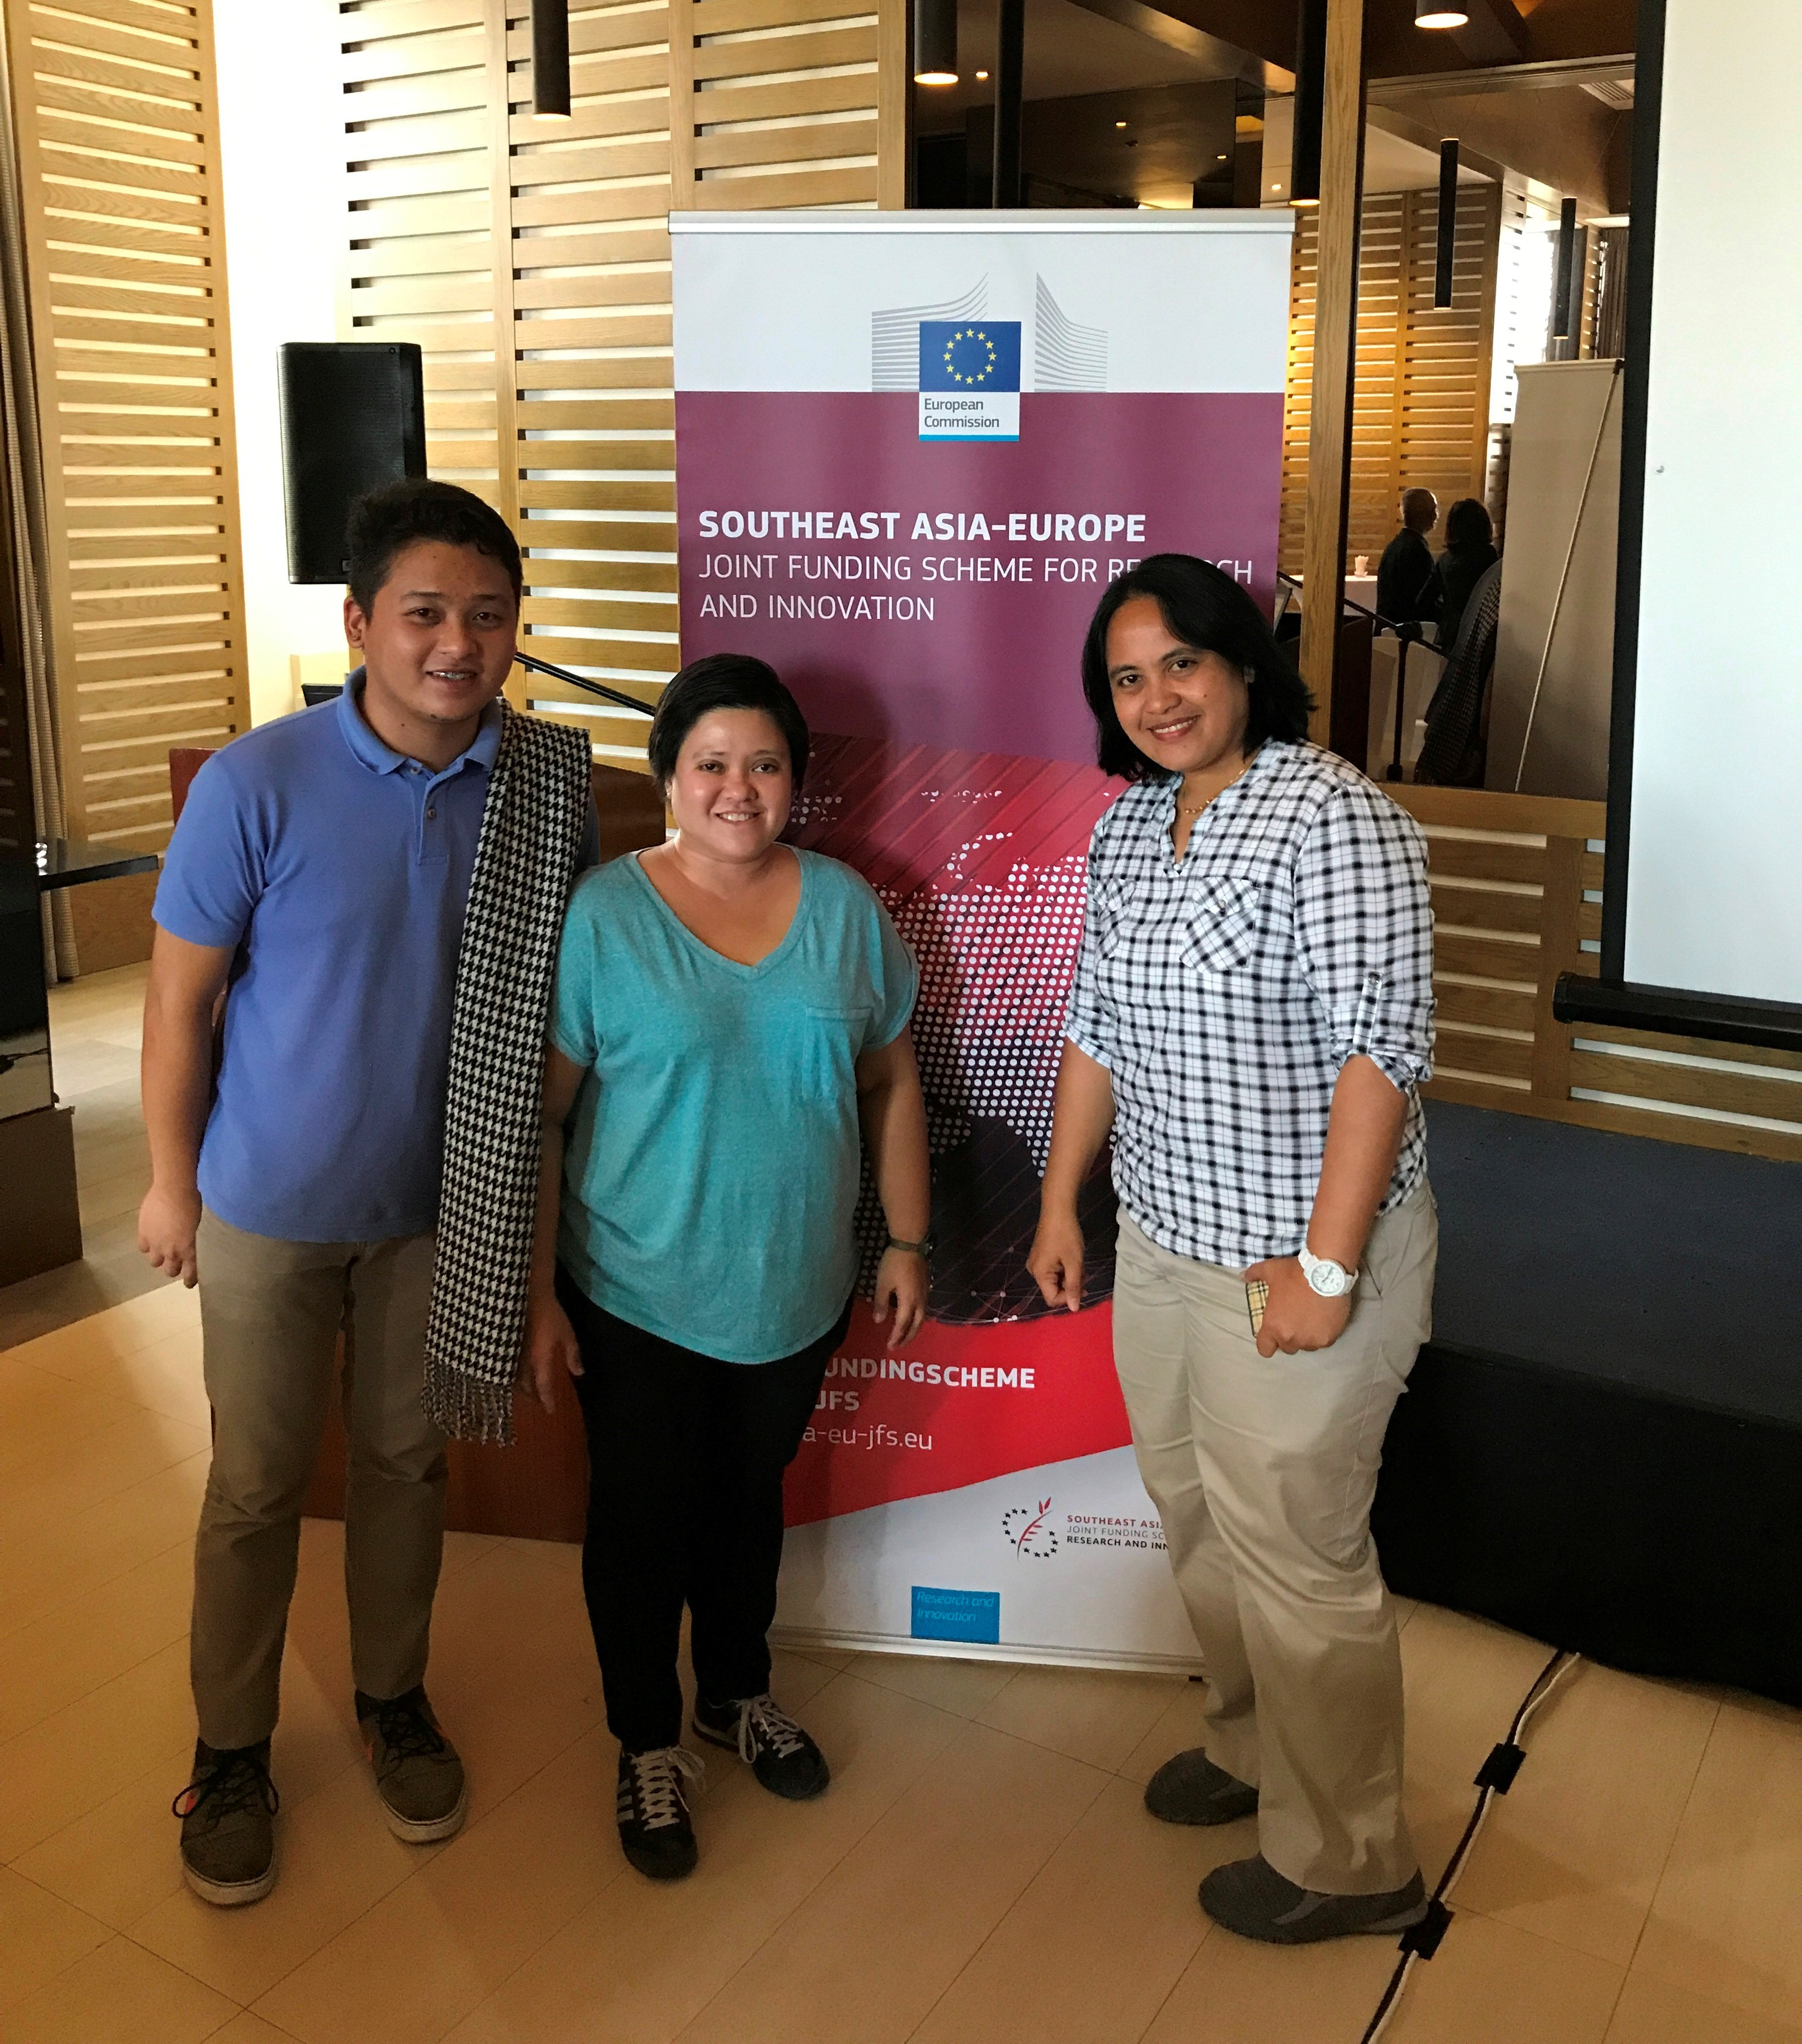 SU staff attend event on EU-SEA Joint Funding Scheme for Research and Innovation